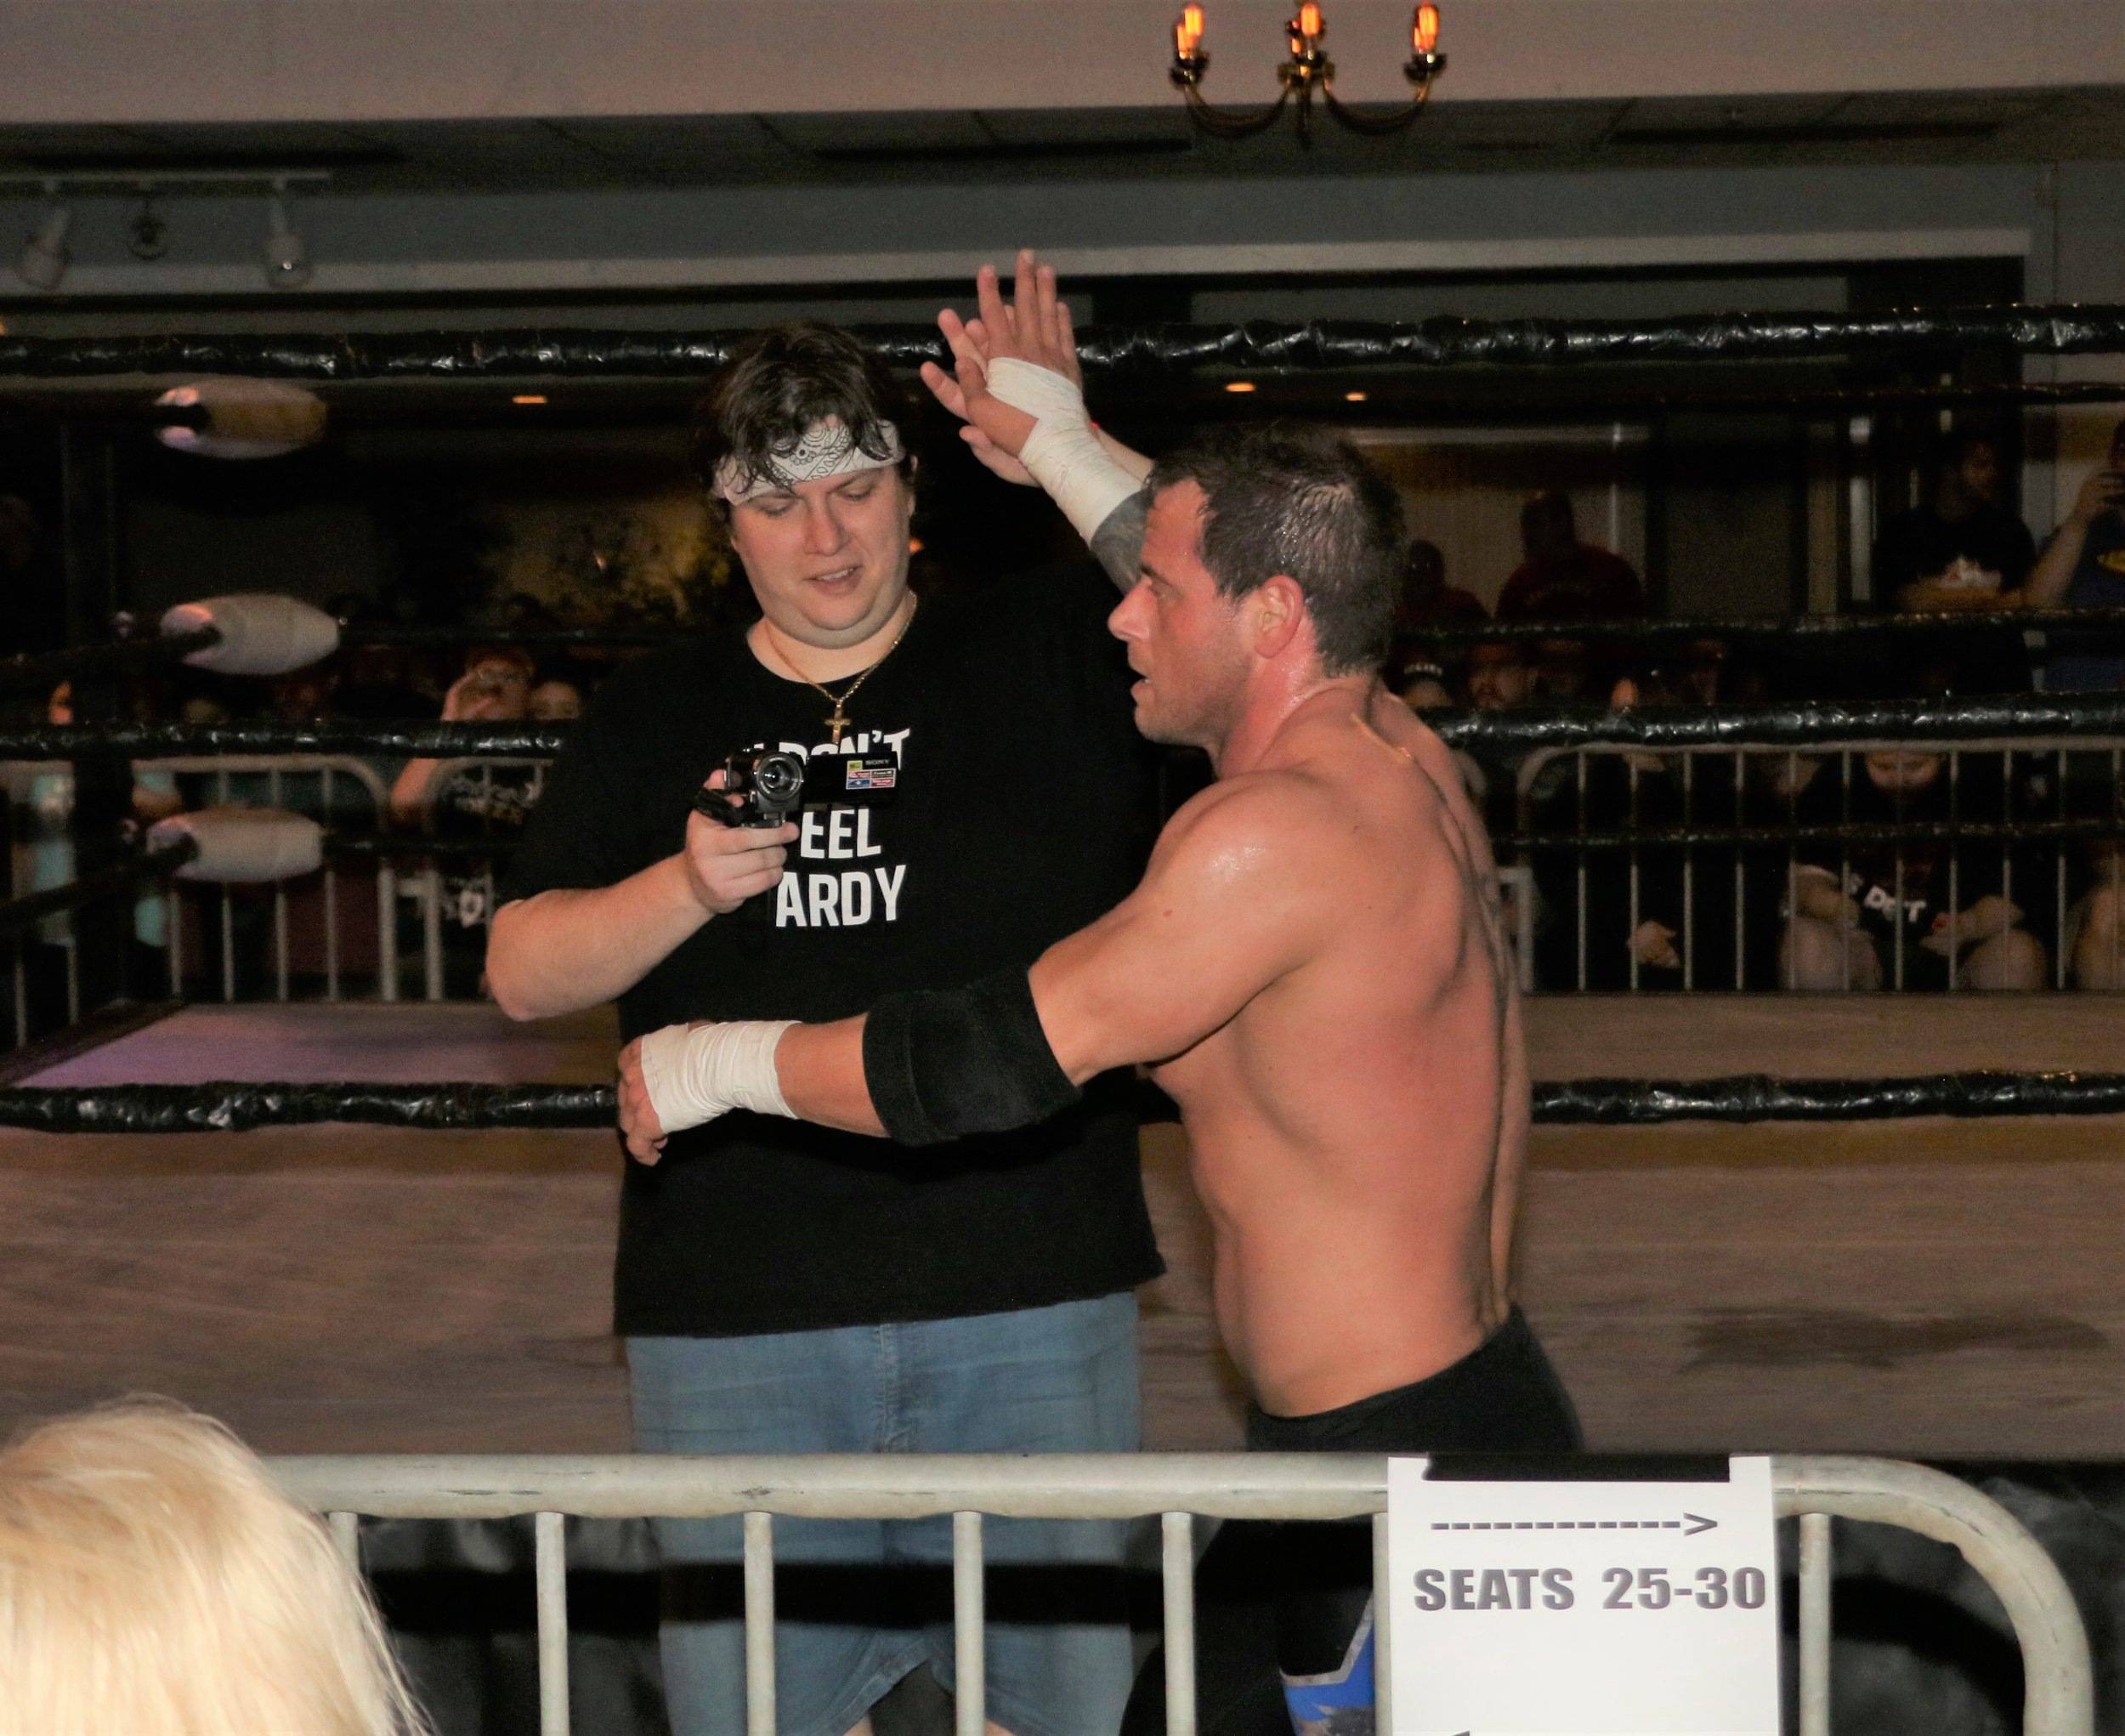 Vic Capri gives a high-five with the ringside videographer.